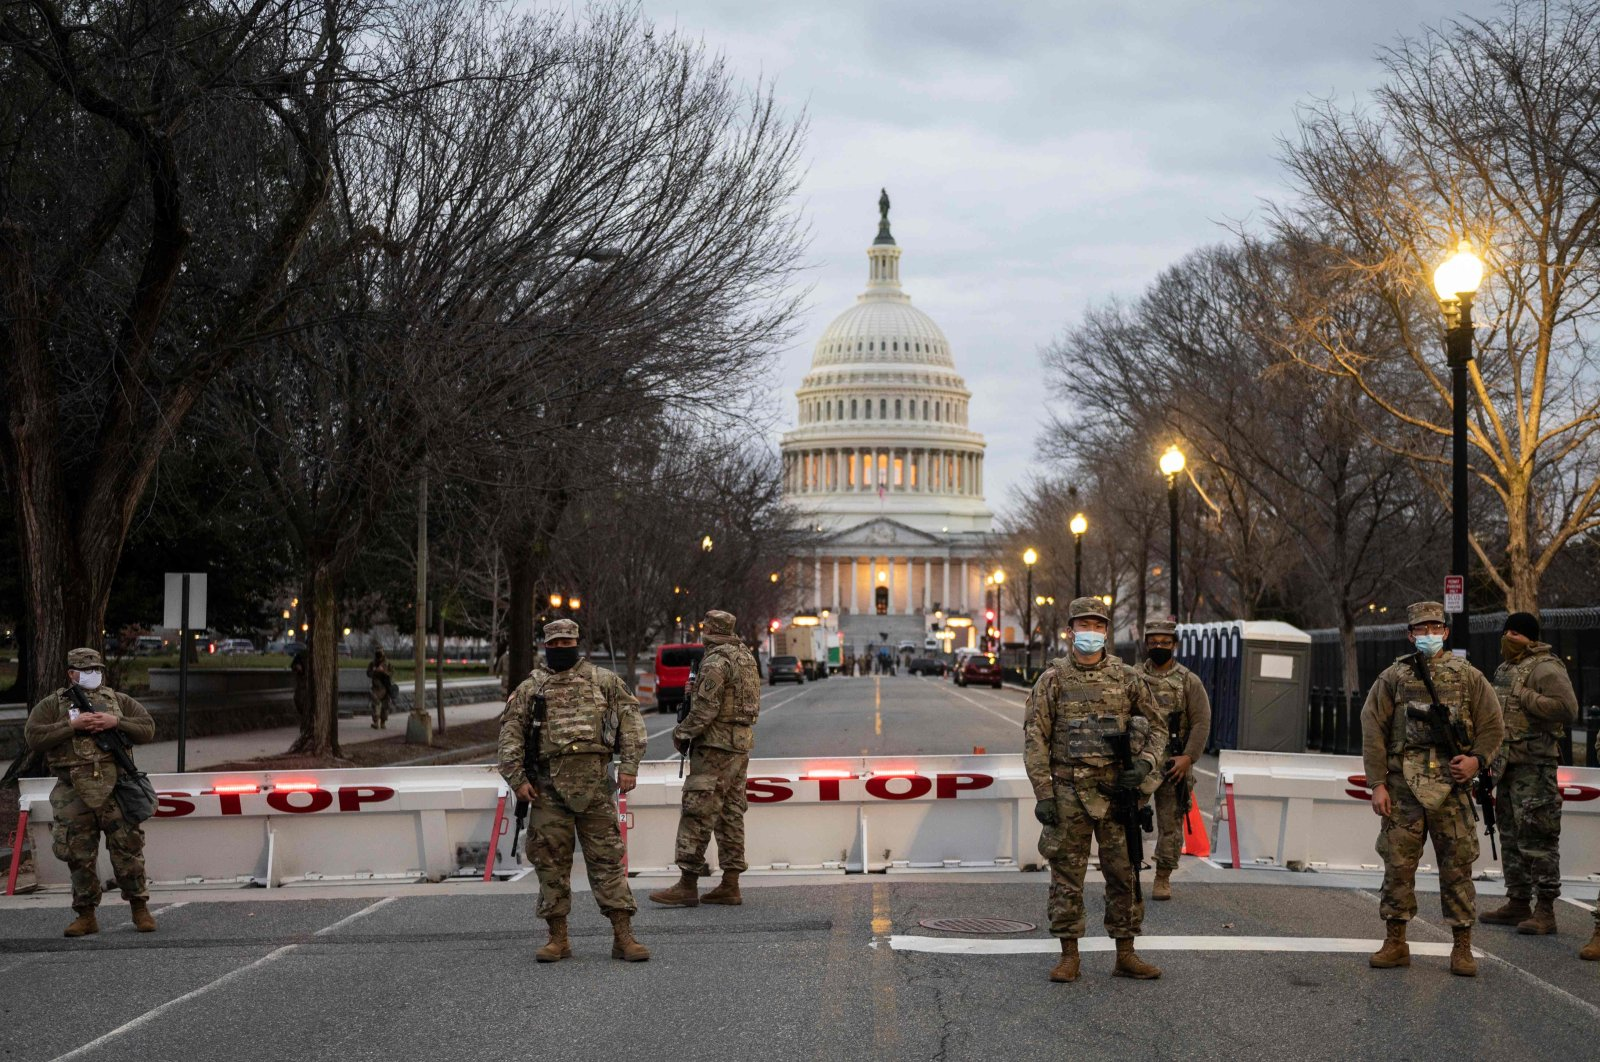 Members of the U.S. National Guard stand watch at the U.S. Capitol in Washington, D.C., U.S., Jan. 17, 2021. (AFP Photo)